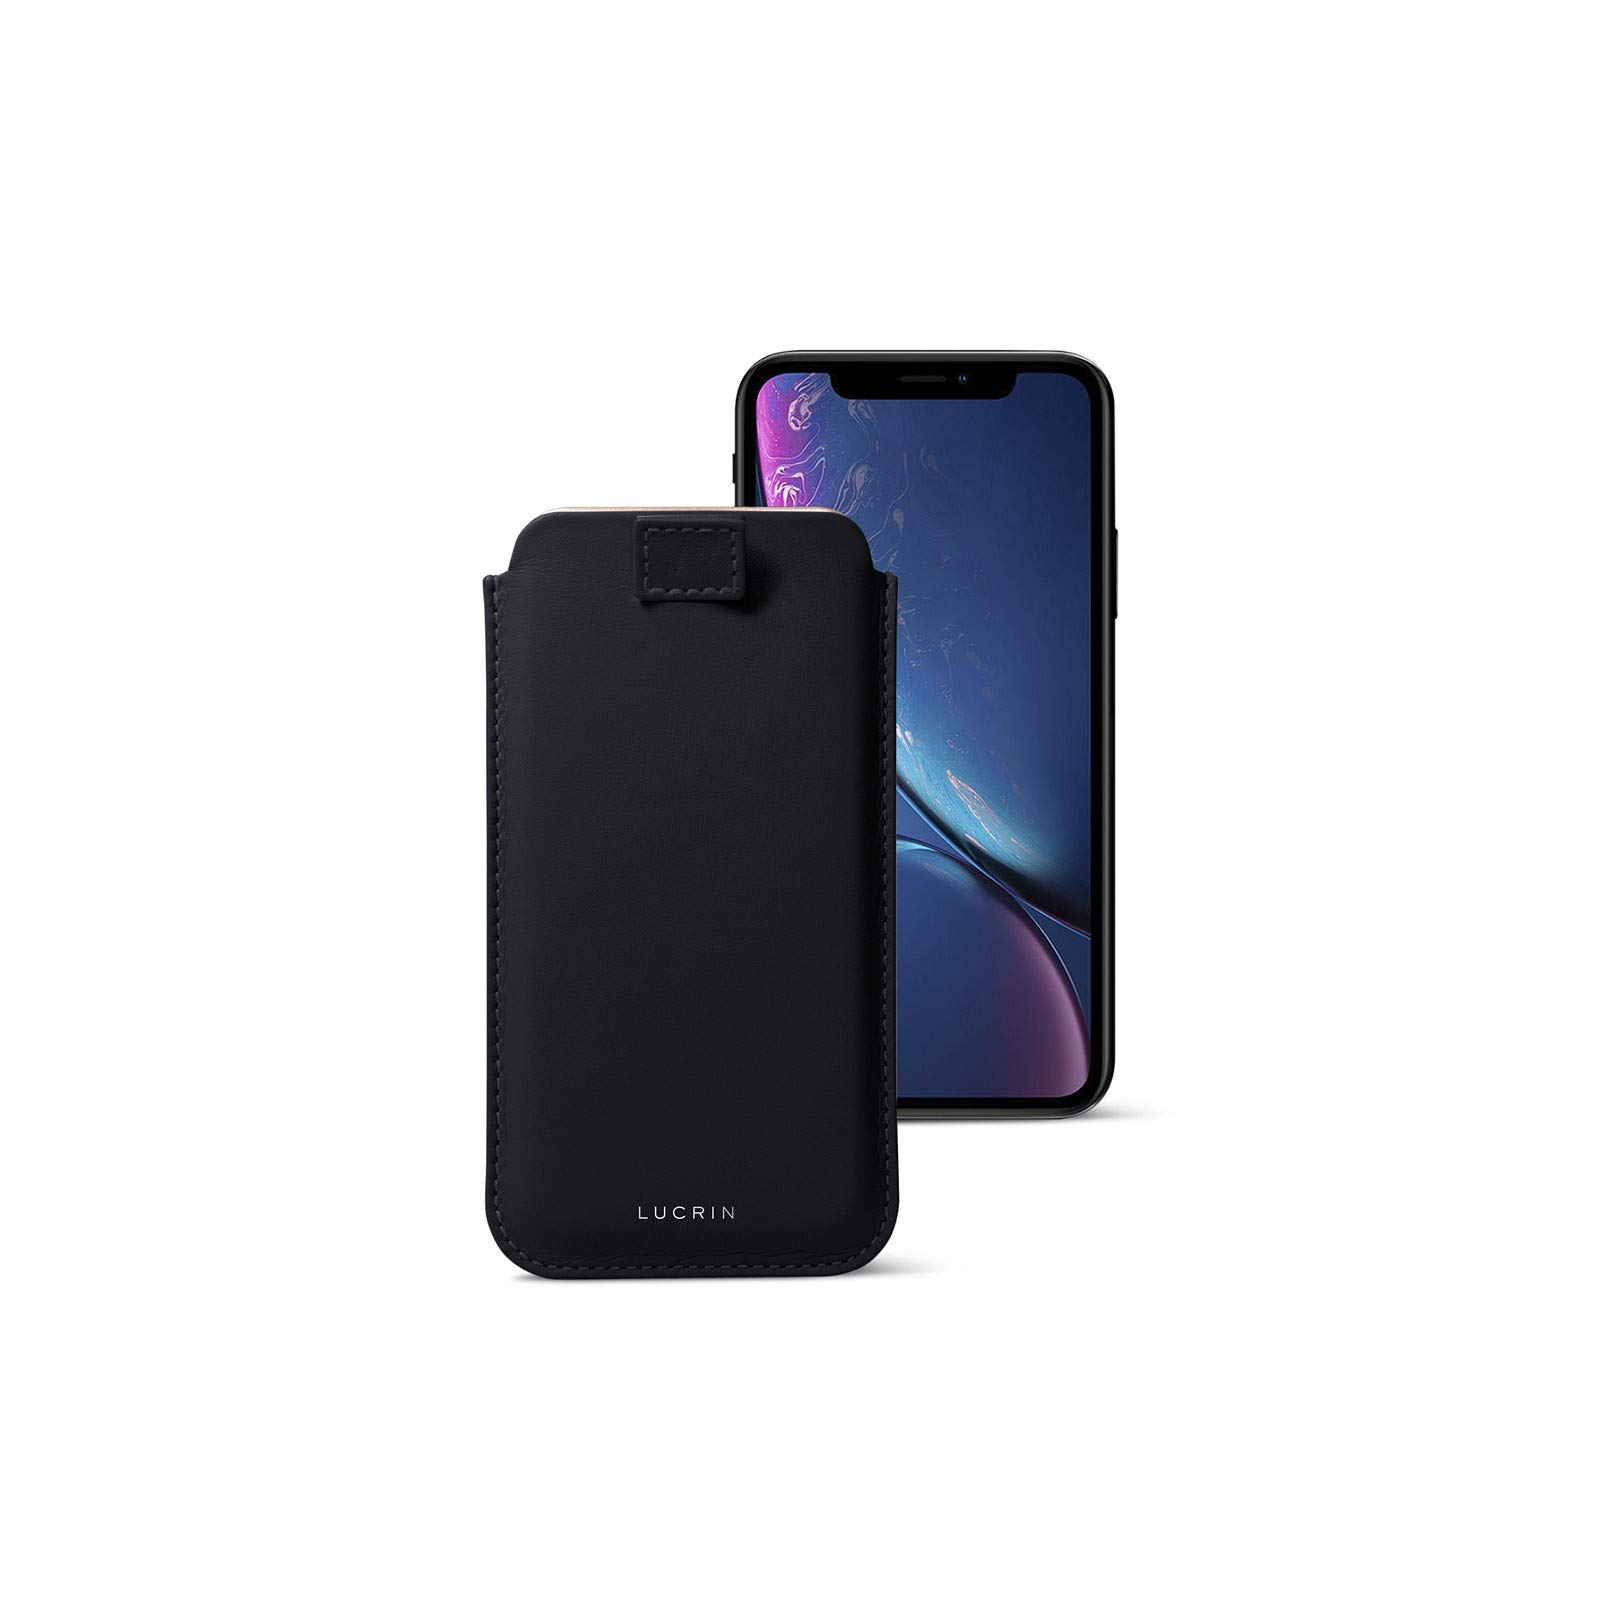 Lucrin - Leather Case with Pull Tab Compatible with iPhone XR and Wireless Charging - Black - Genuine Leather by Lucrin